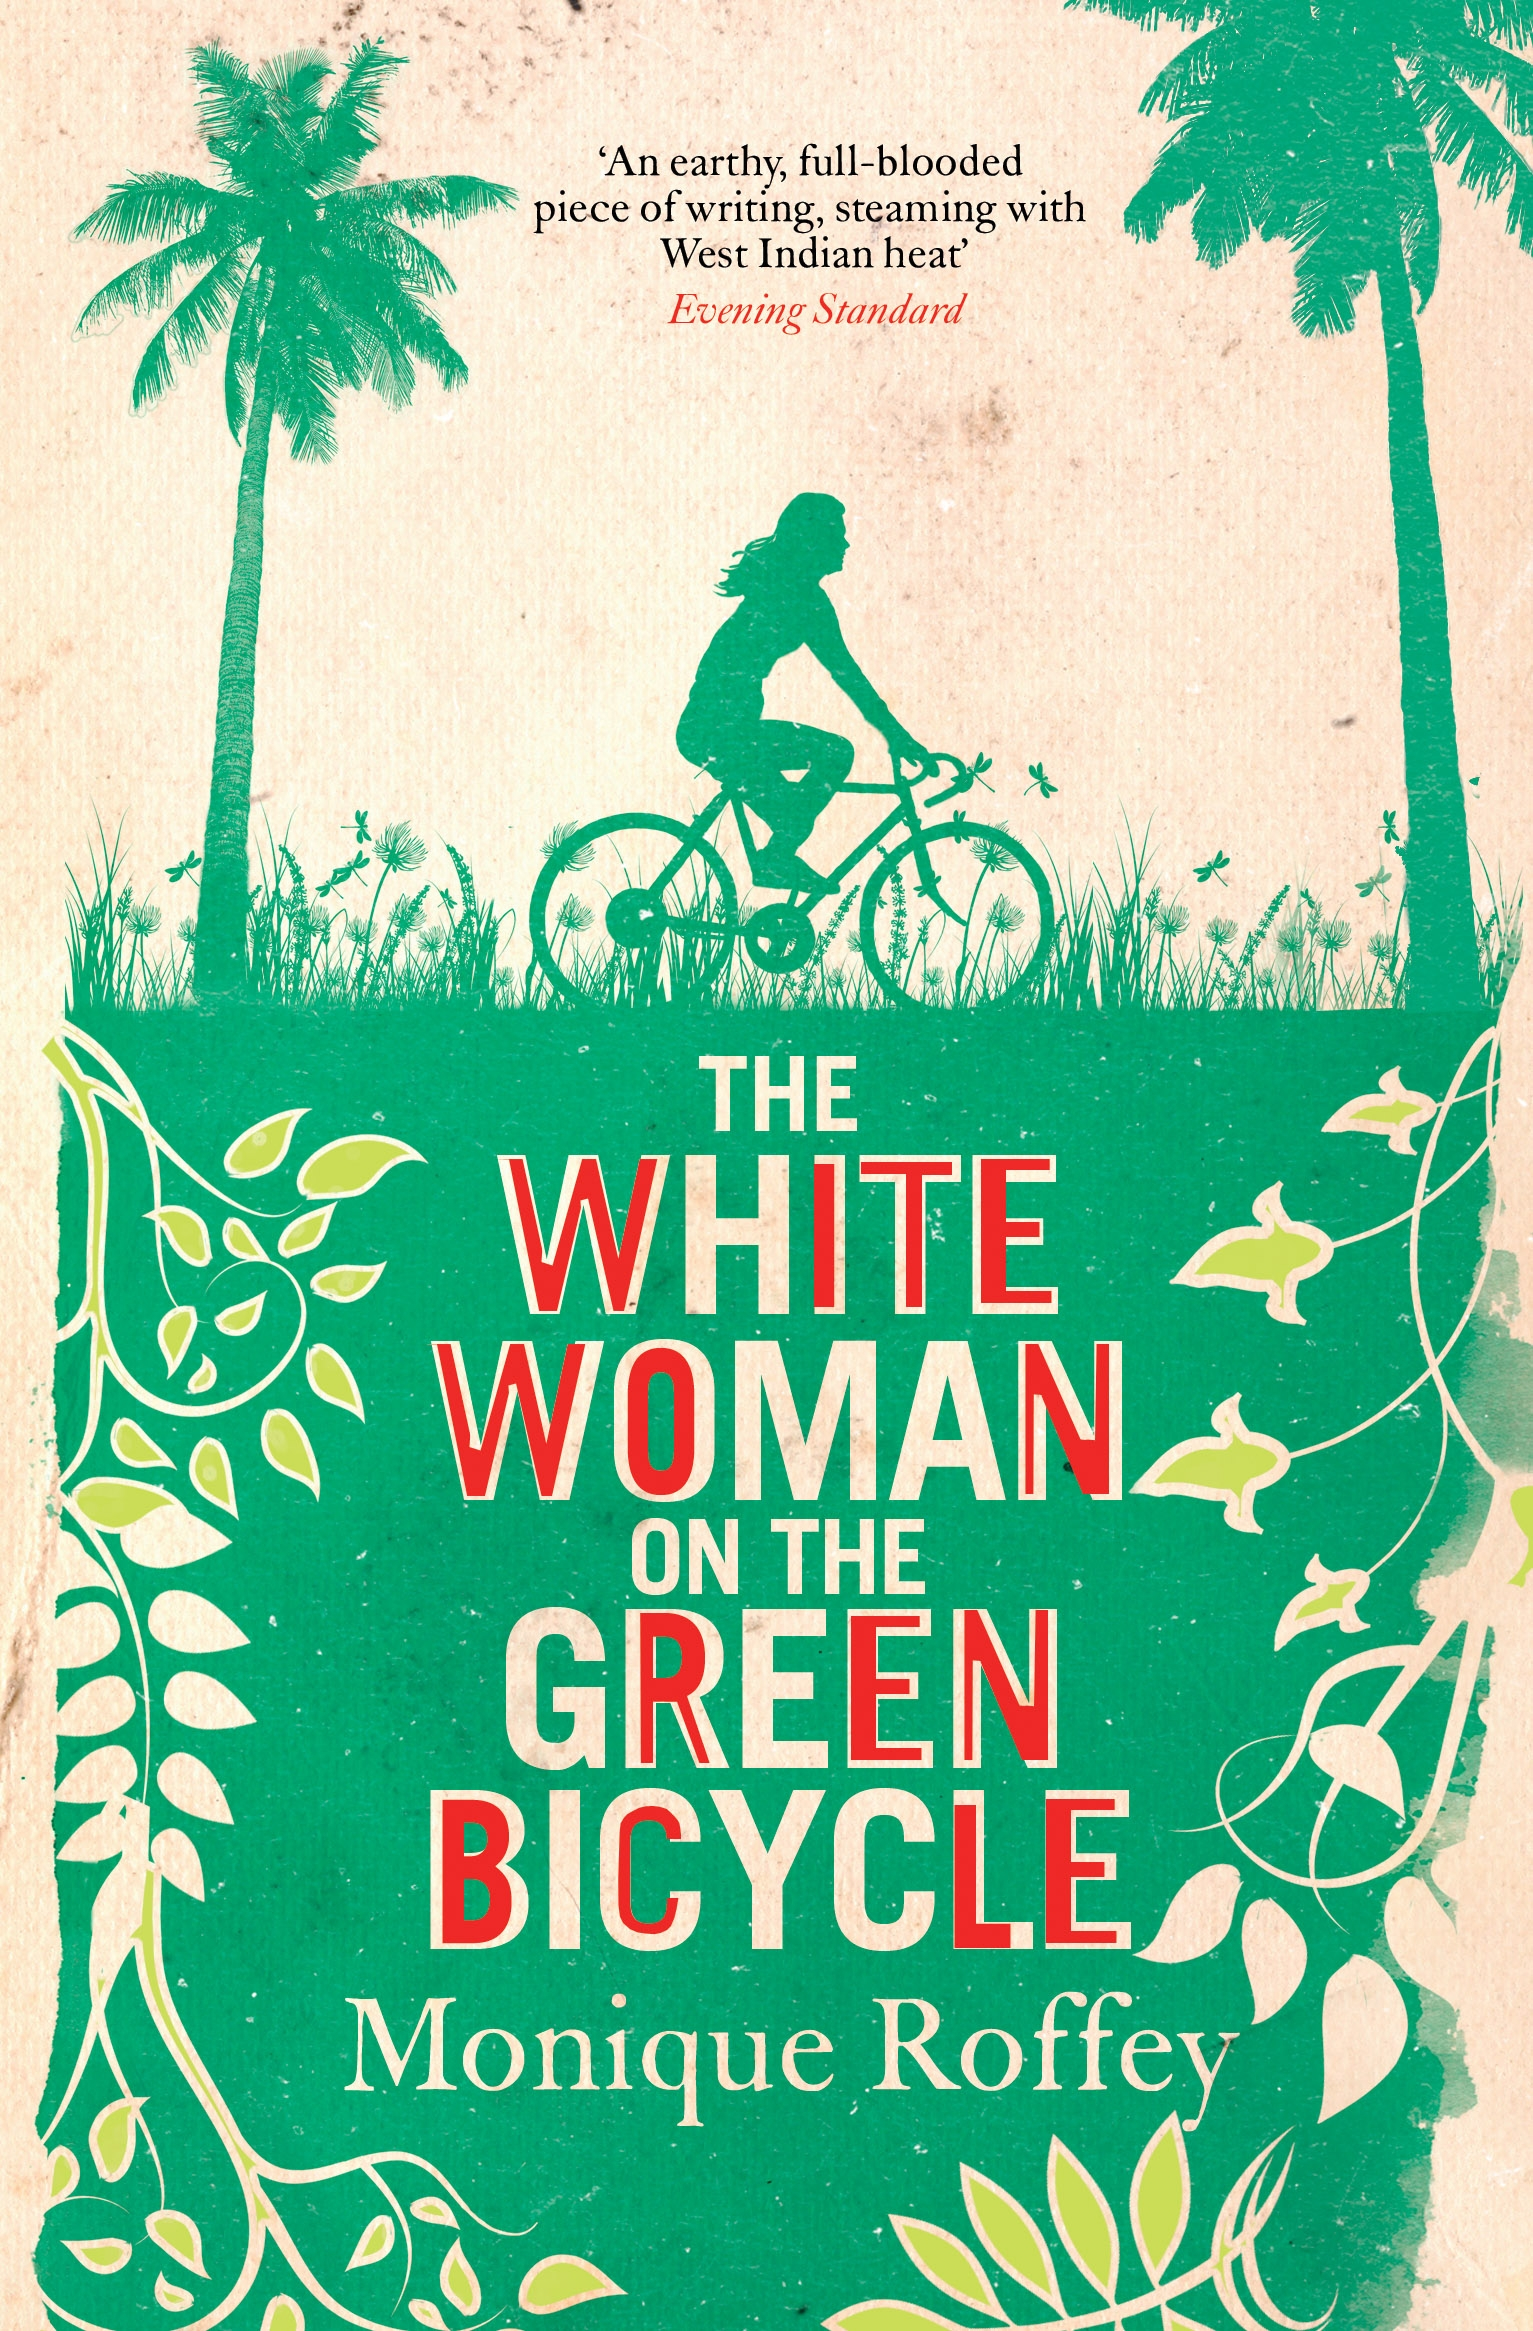 THE WHITE WOMAN ON THE GREEN BICYCLE  Literary fiction, 439 pages Simon & Schuster - April 2010  When George and Sabine Harwood arrive in Trinidad from England, George is immediately seduced by the beguiling island, while Sabine feels isolated. As they adapt, their marriage endures for better or worse, until George discovers a cache of letters Sabine had hidden from him, unleashing a devastating series of secrets.